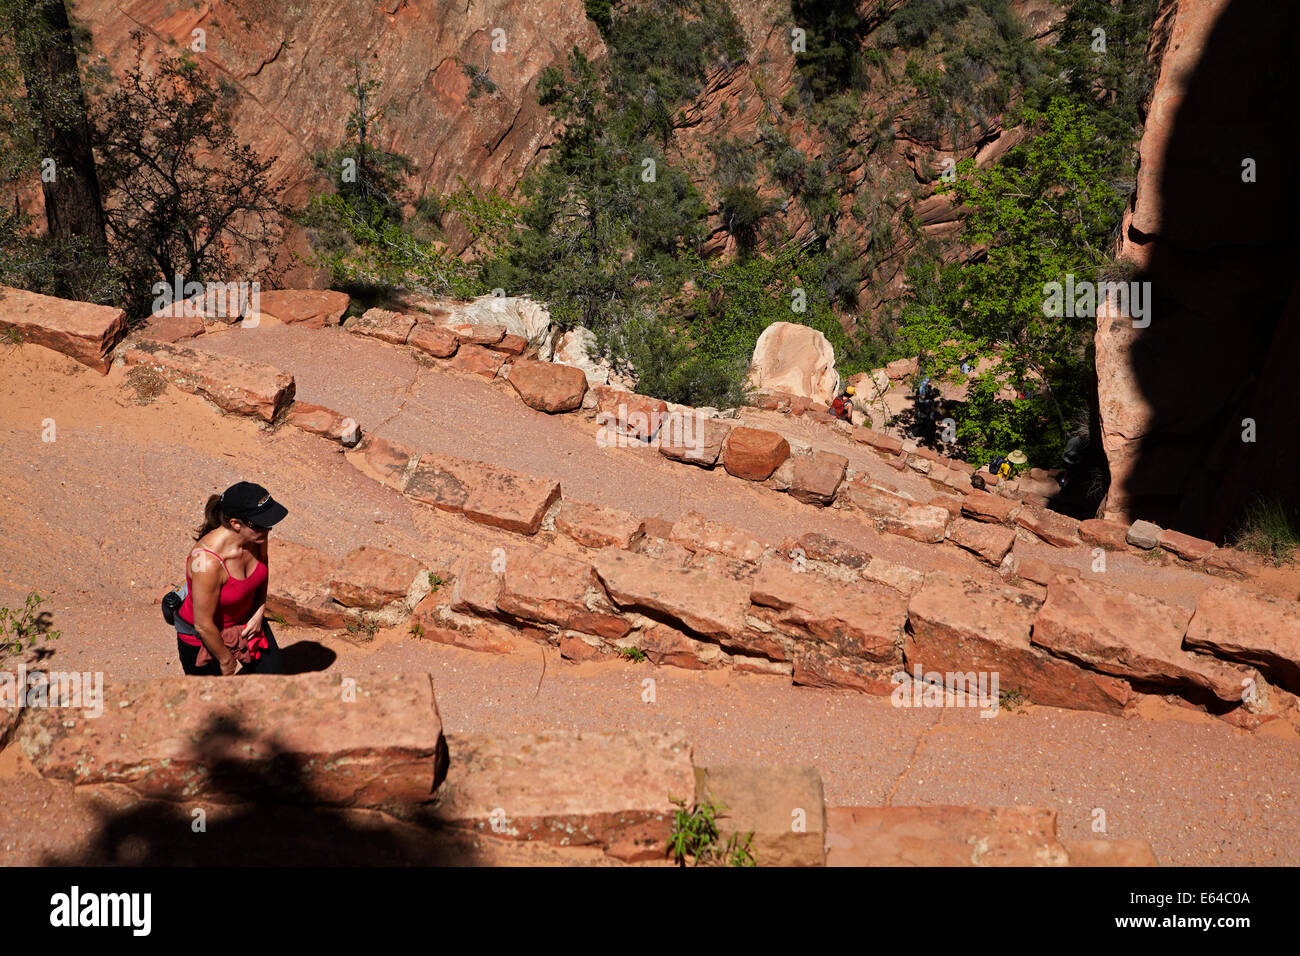 Hikers on Walter's Wiggles zigzag, on West Rim Trail and  Angels Landing track, Zion National Park, Utah, USA Stock Photo